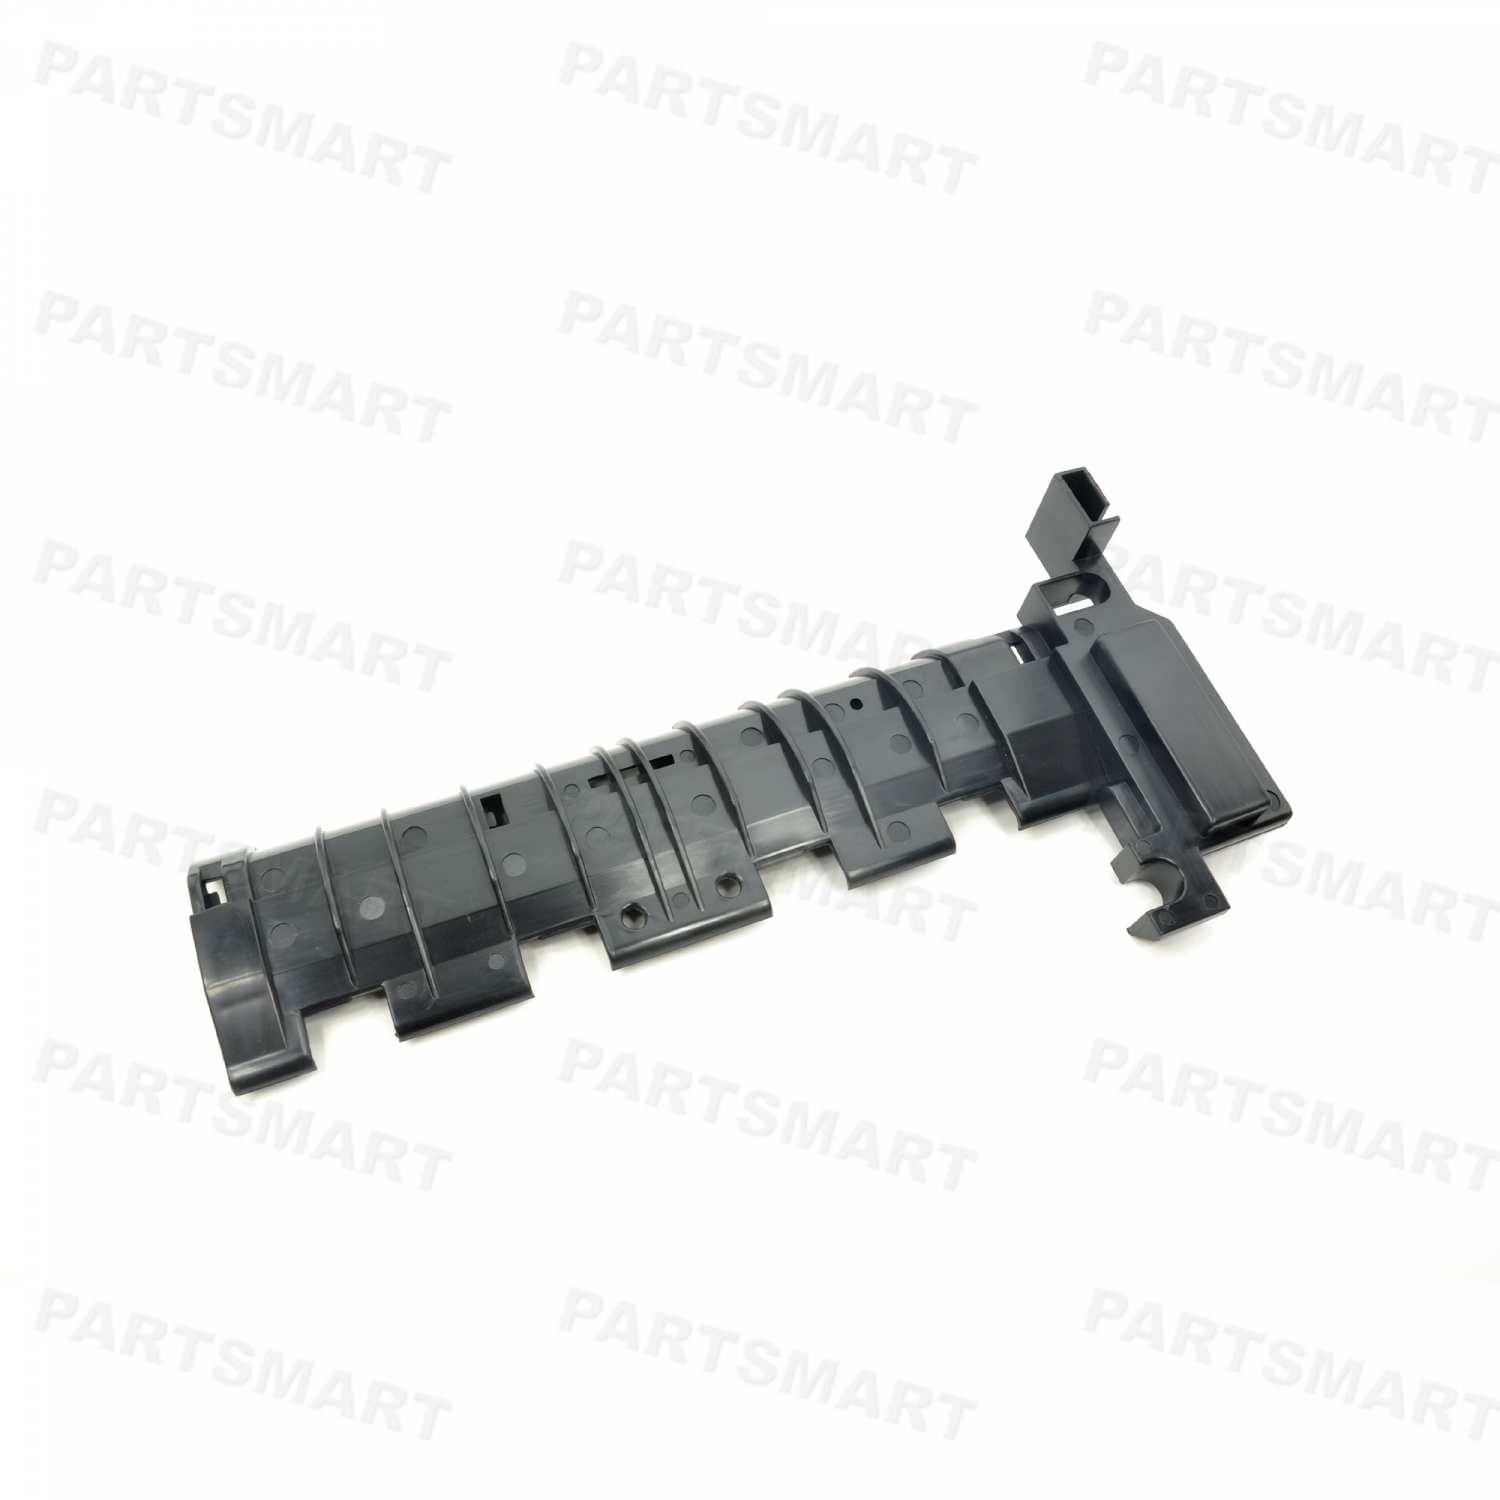 RC1-3989-000 Cover, Delivery for HP LaserJet 2400